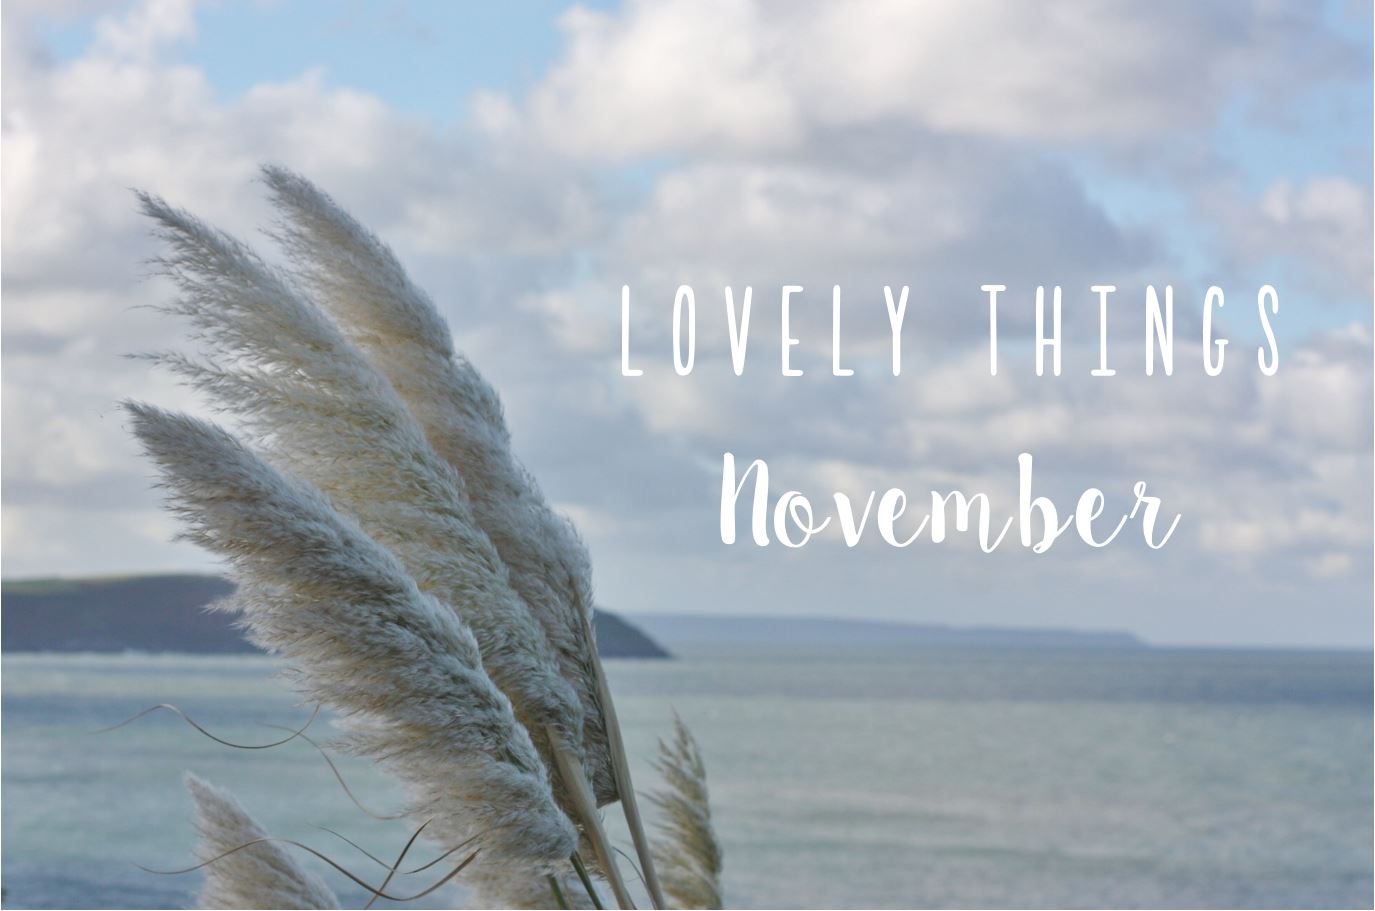 lovely-things-november-1